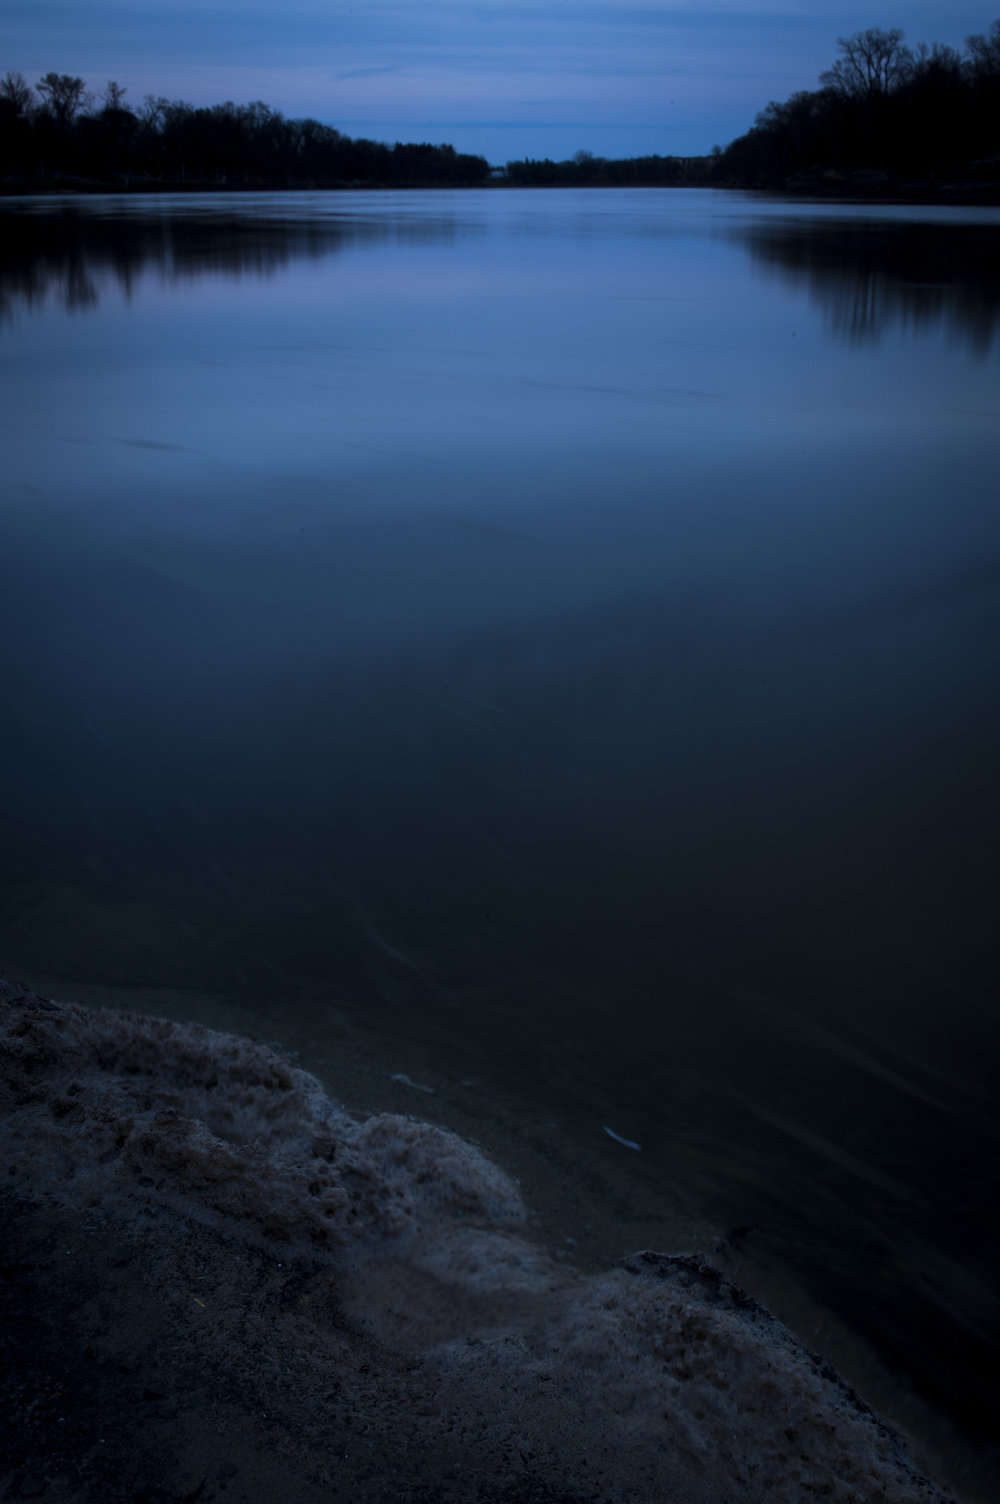 Fresh Water? By: Robert Lowdon After Sunset, Landscape Photograph, Assiniboine River, MB, Canada